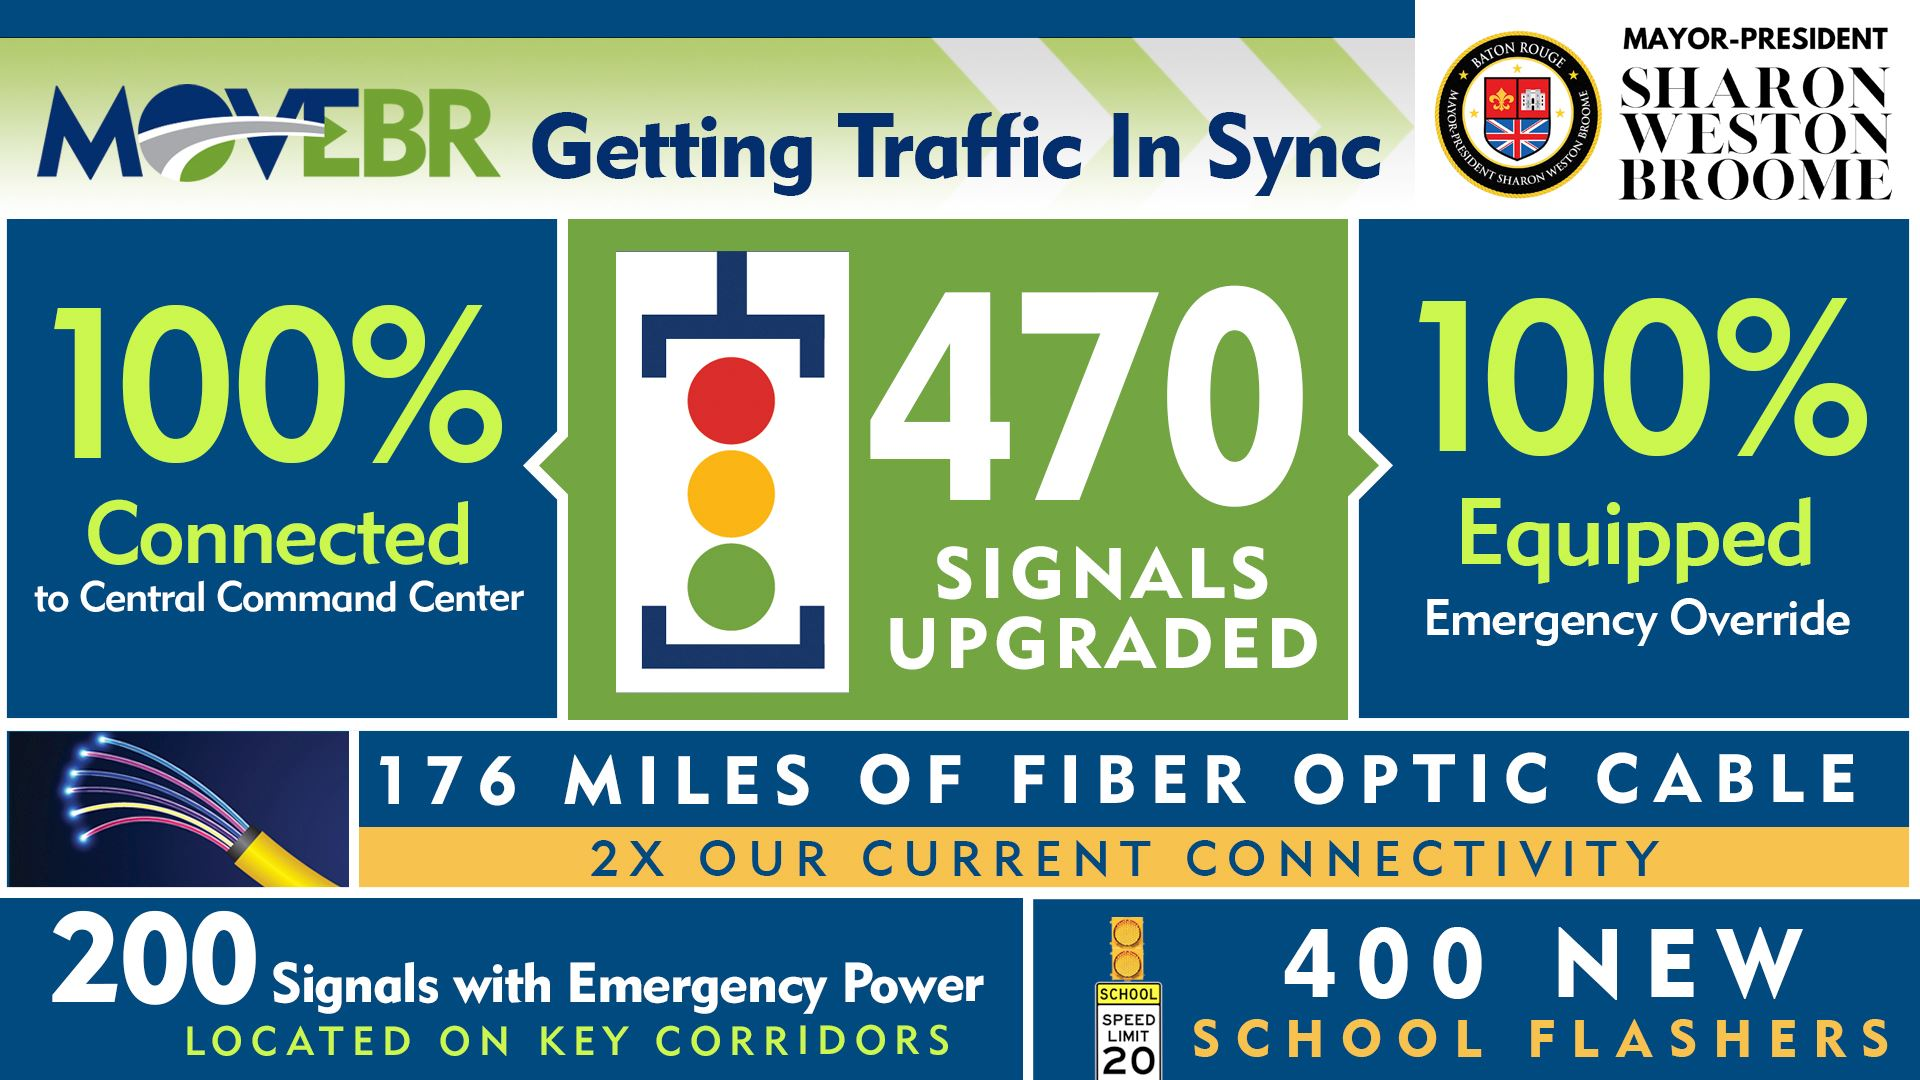 Move EBR getting traffic in sync infographic  470 signals upgraded all signals are 100% connected to